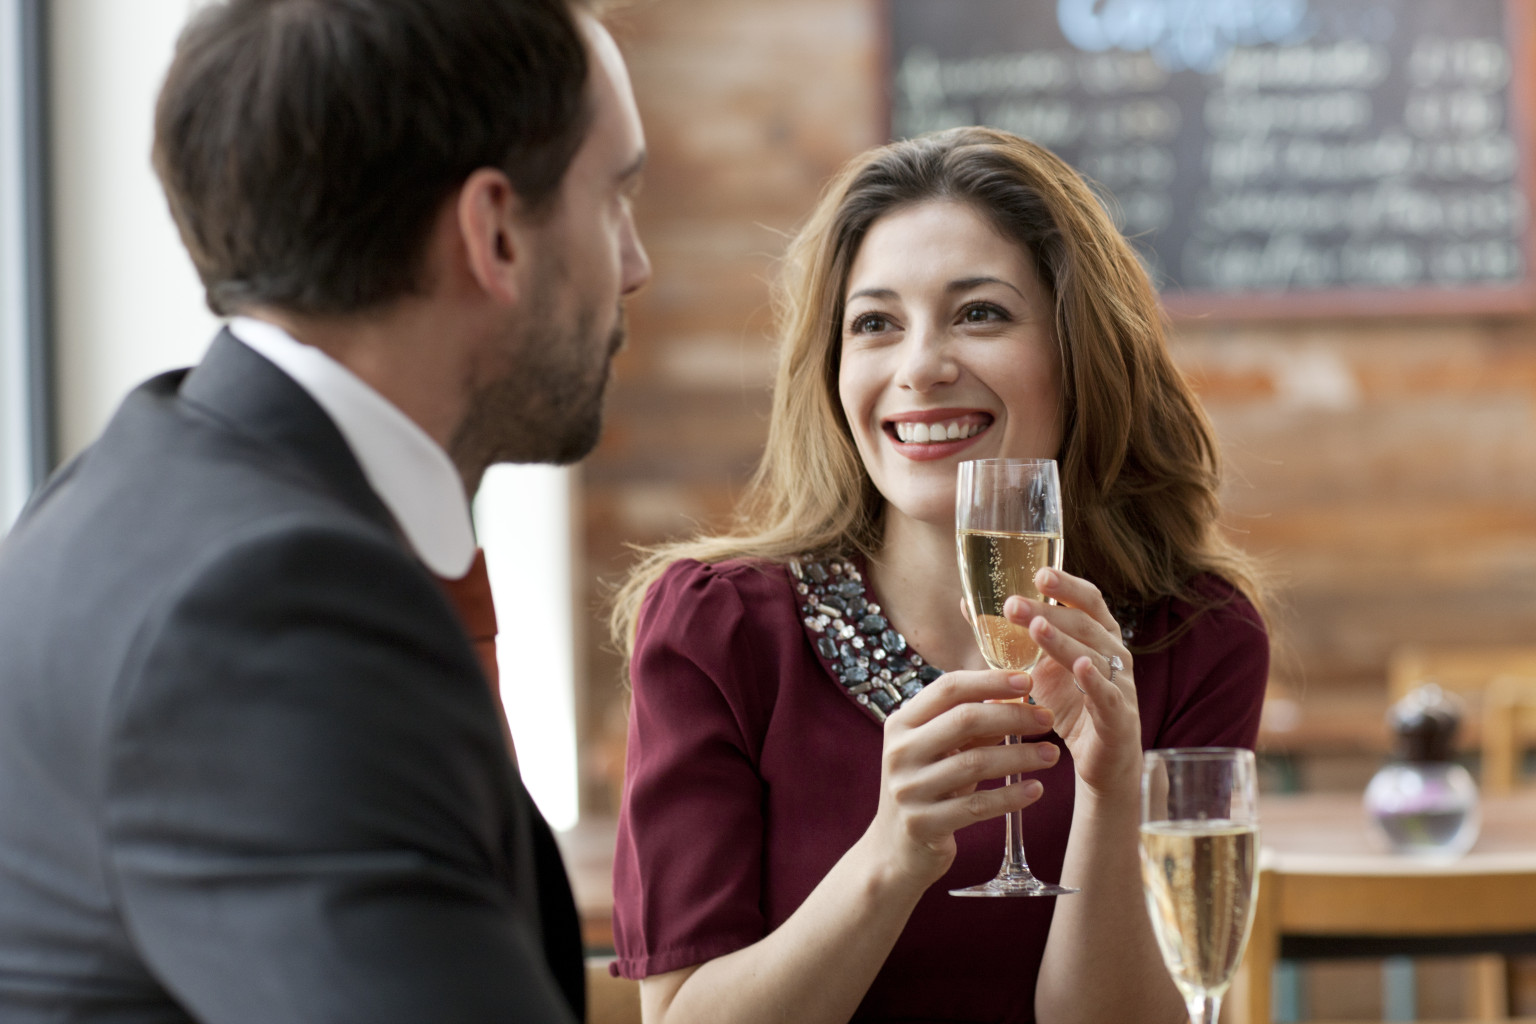 Dating for divorcees